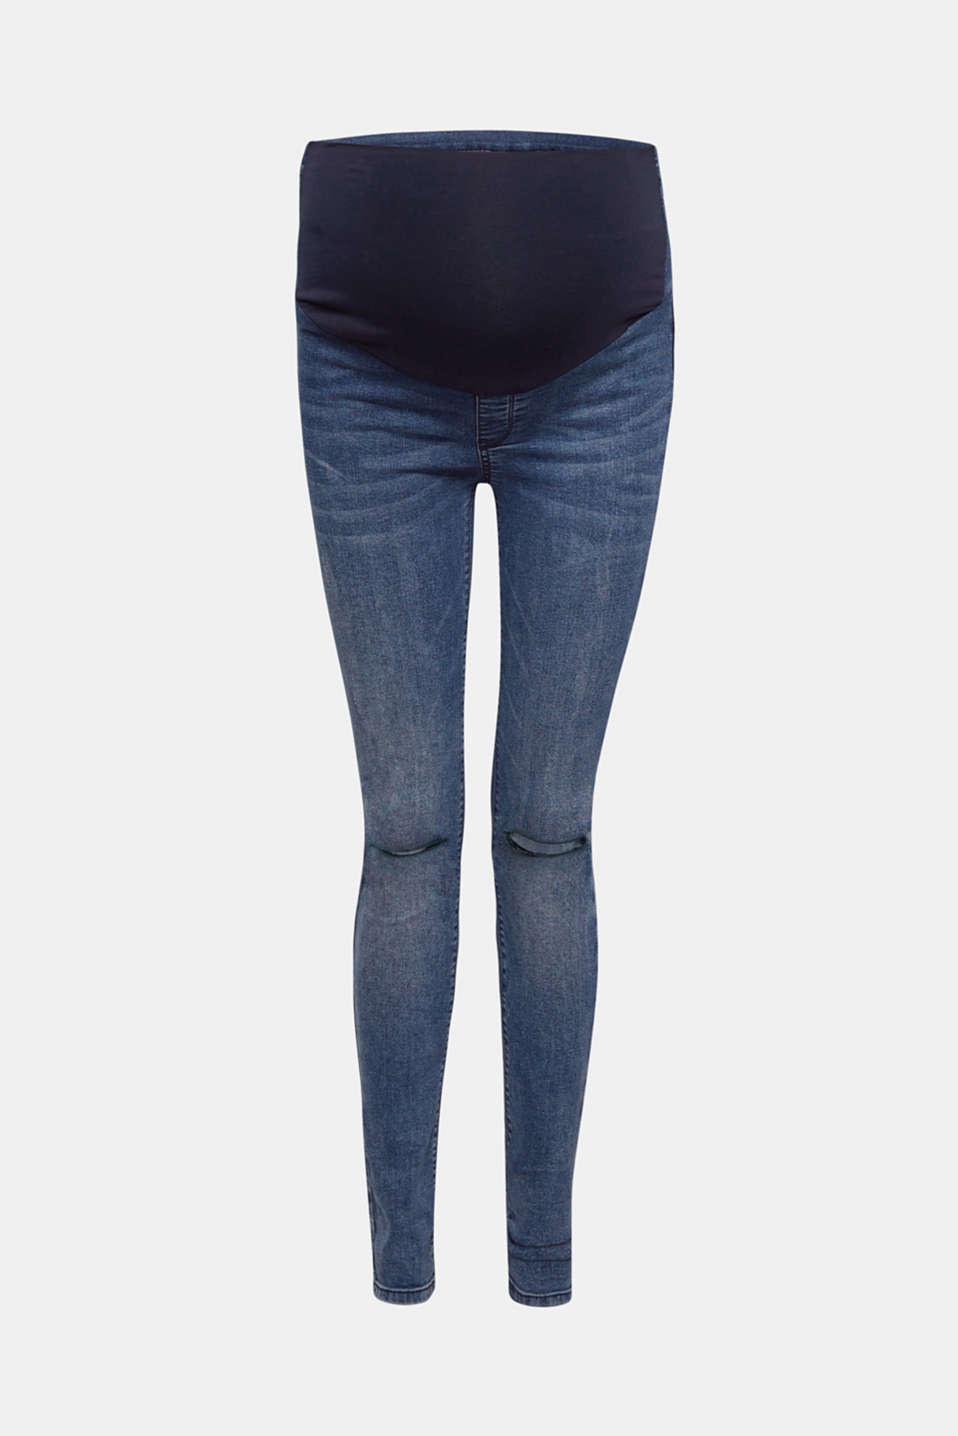 The cool garment wash and cut-outs at knee height give these jeggings with an adjustable over-bump waistband their stylish look!